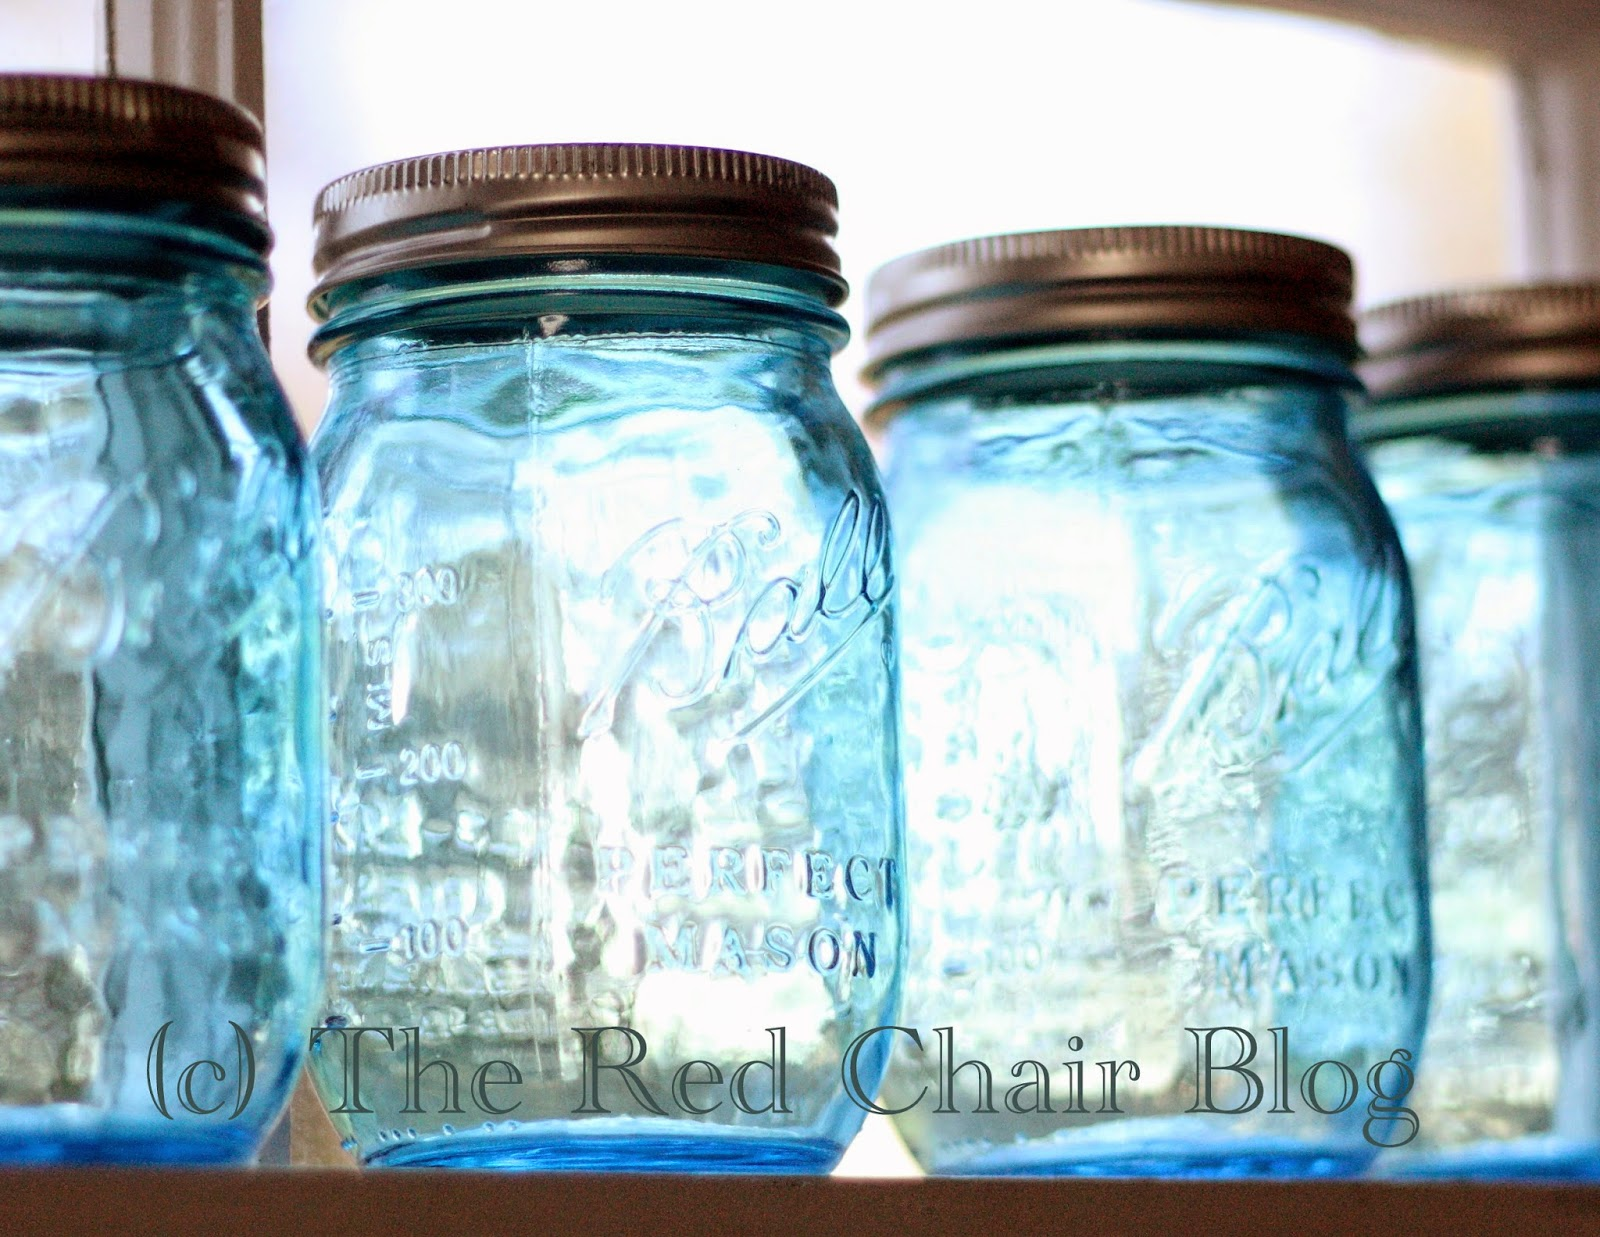 Blue ball jars at The Red Chair Blog